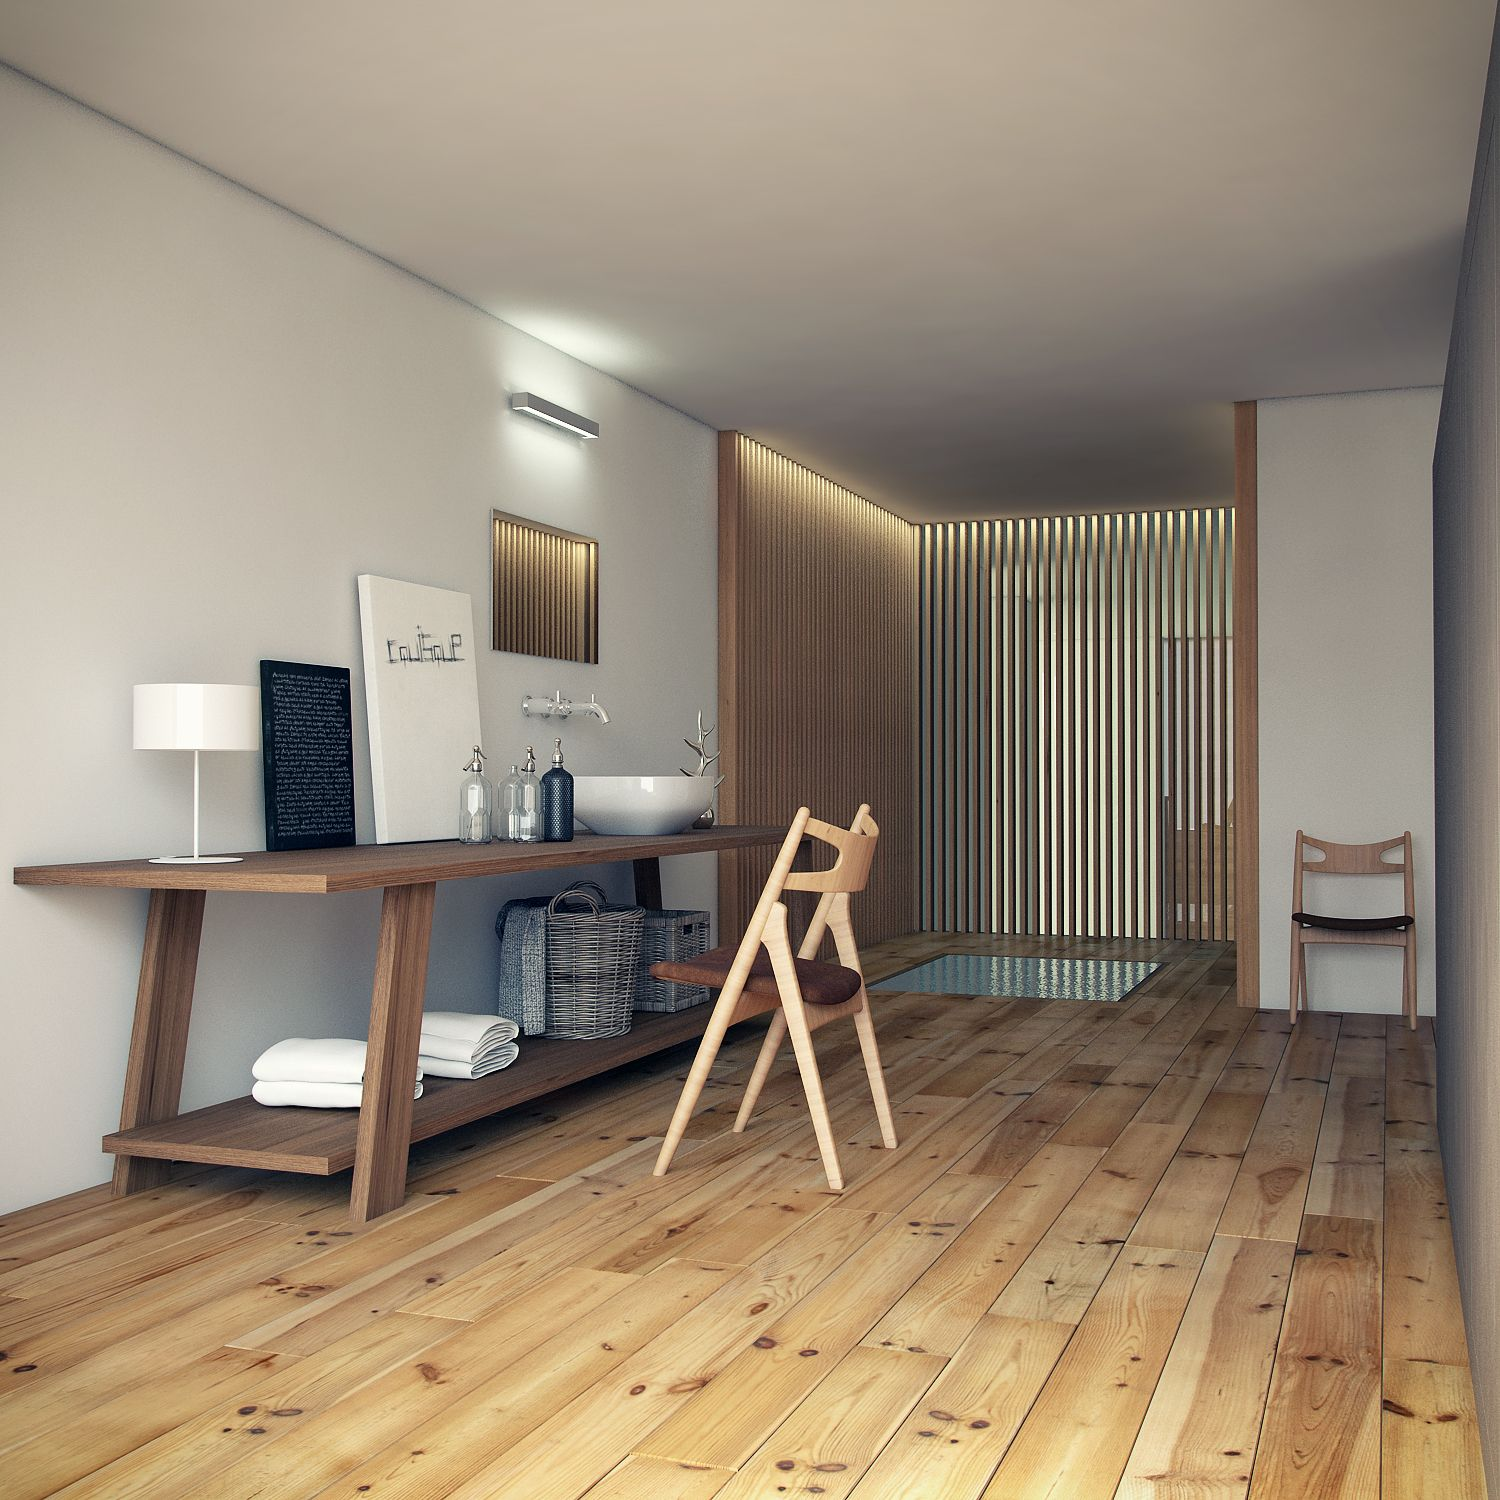 Showroom simontech interior render vray photoshop 3ds - 3ds max vray render settings interior ...